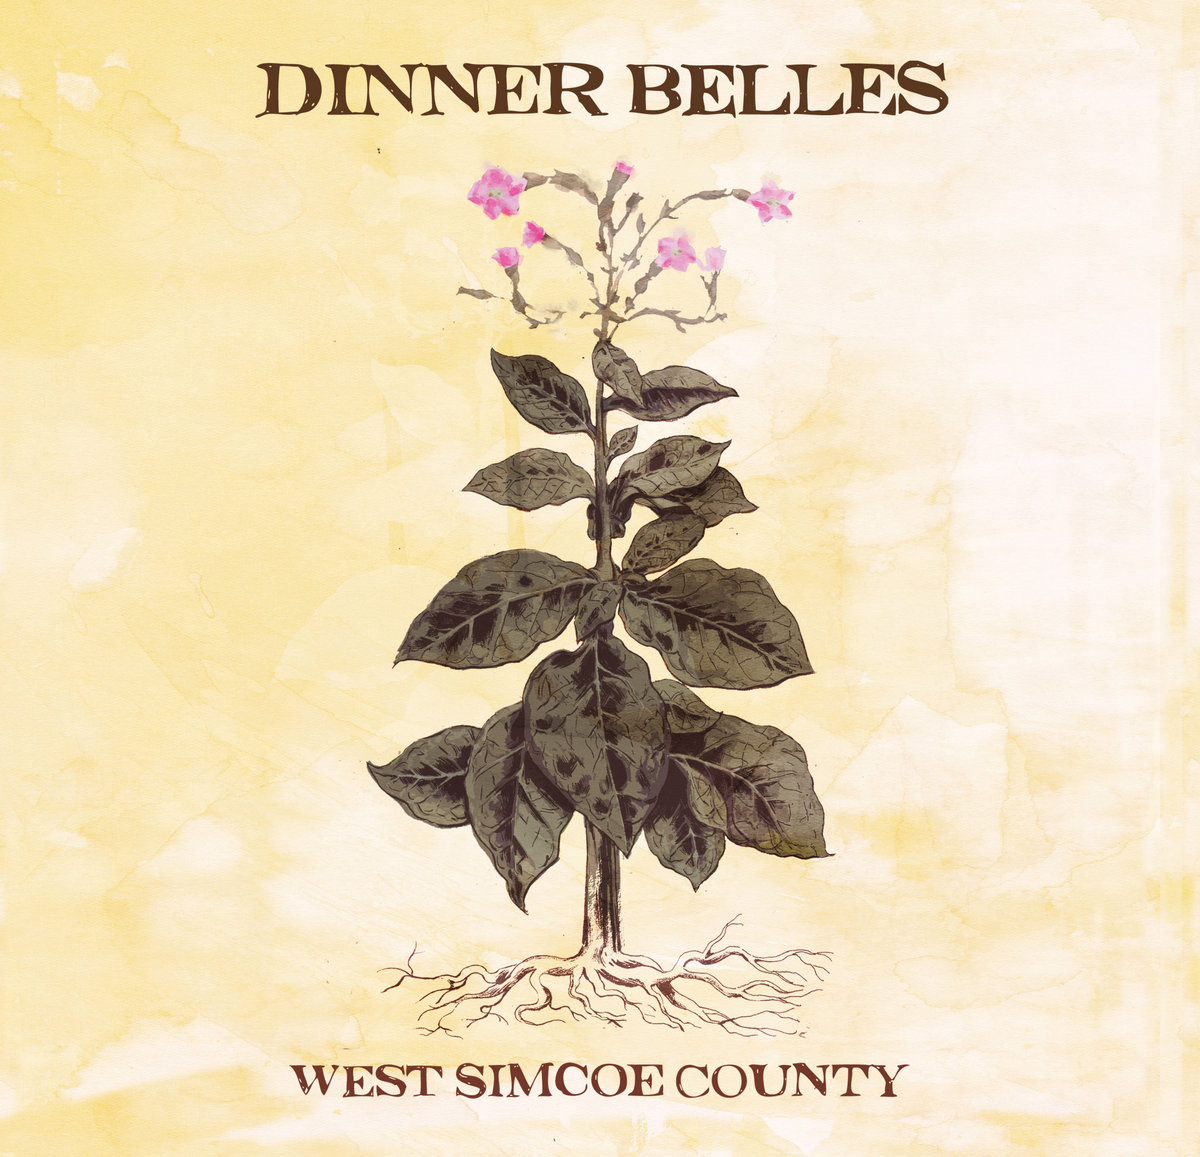 west simcoe county dinner belles